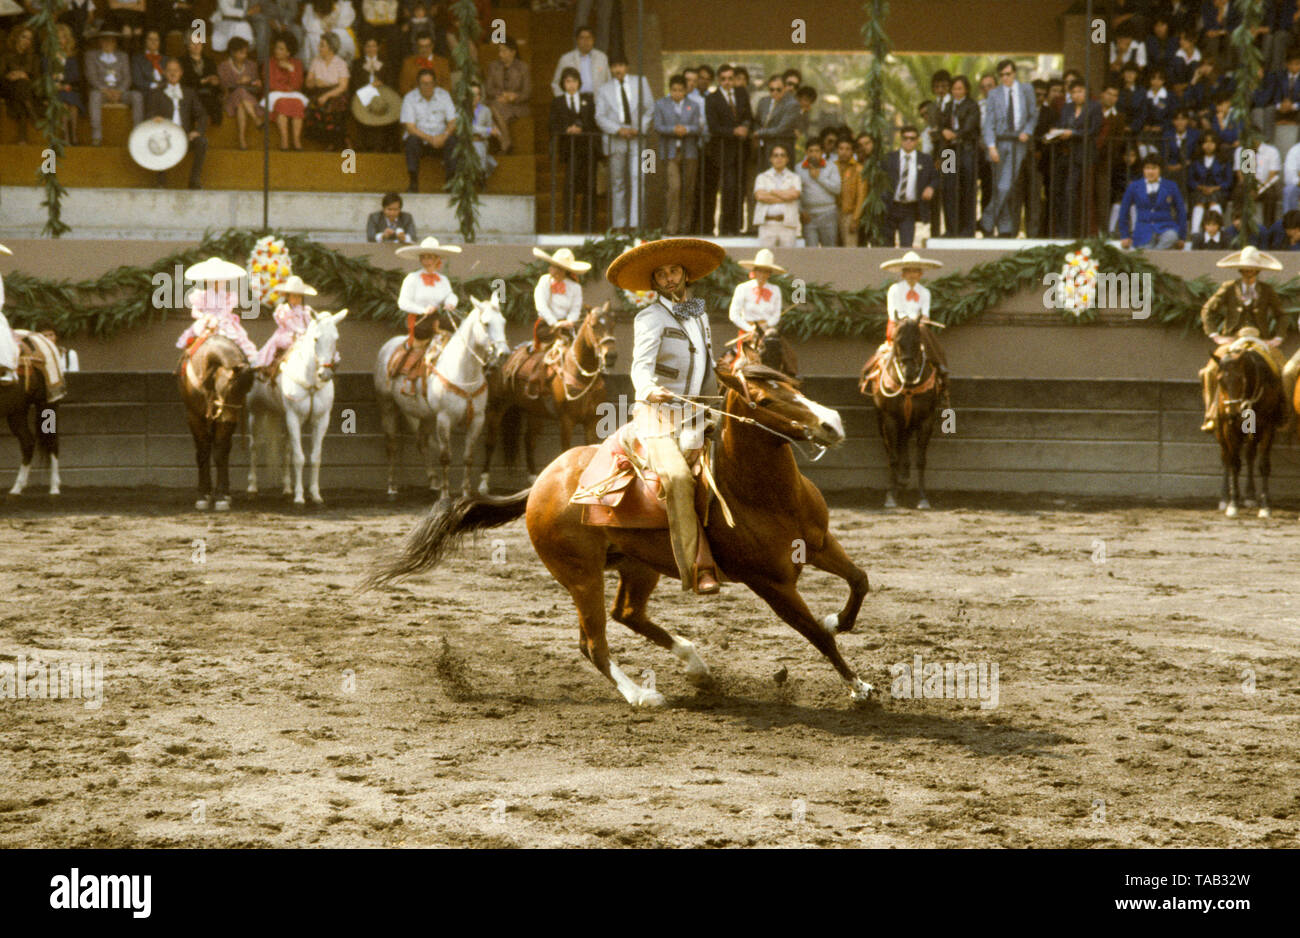 RODEO Mexico Riders on horseback show their skill - Stock Image